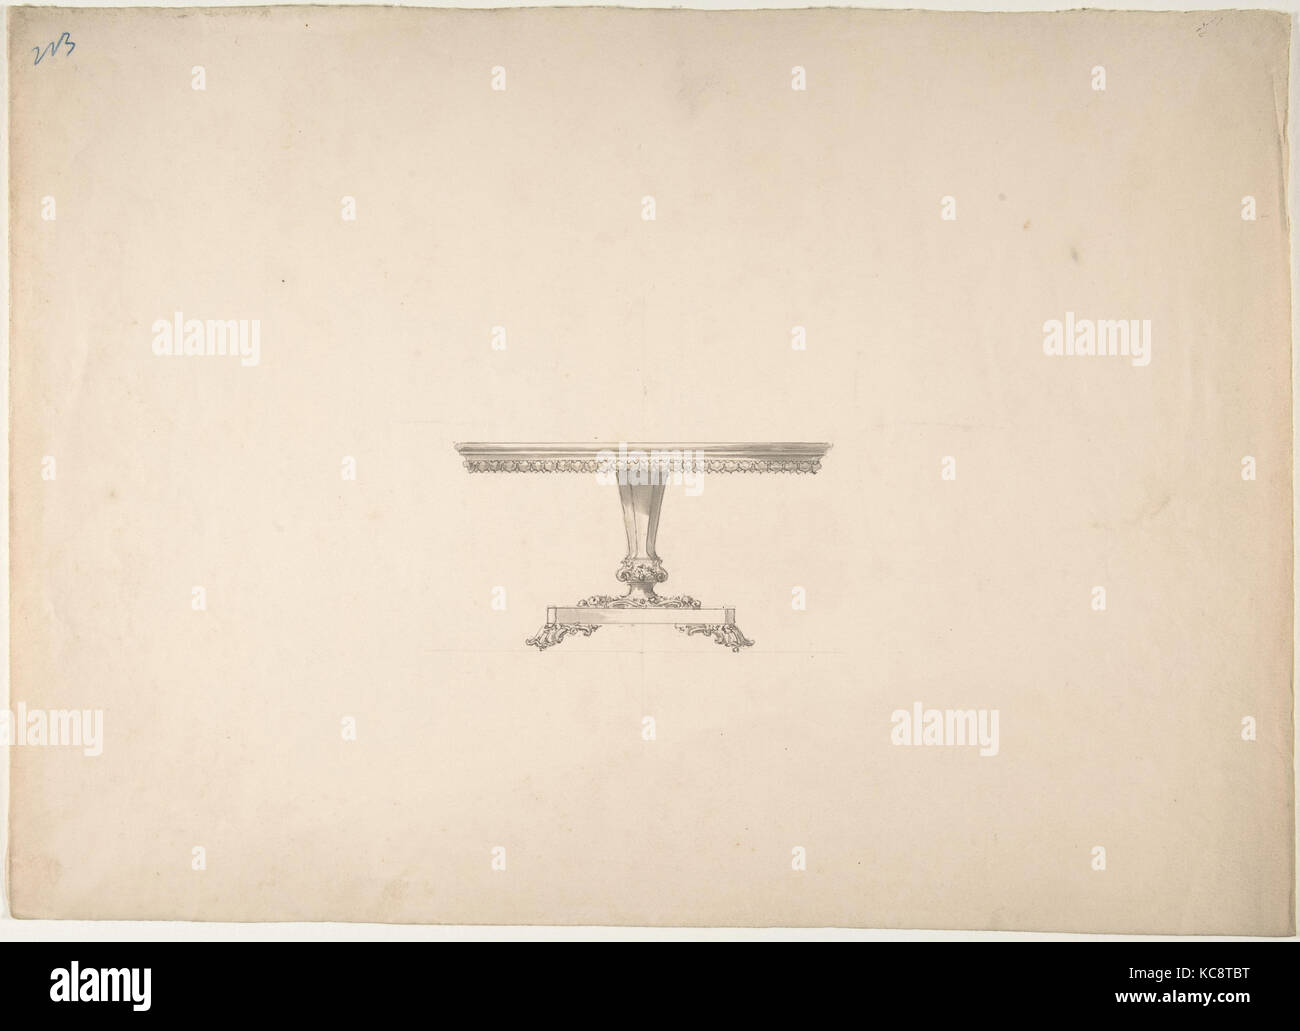 Design for a Round Pedestal Table, Anonymous, British, 19th century, early 19th century - Stock Image